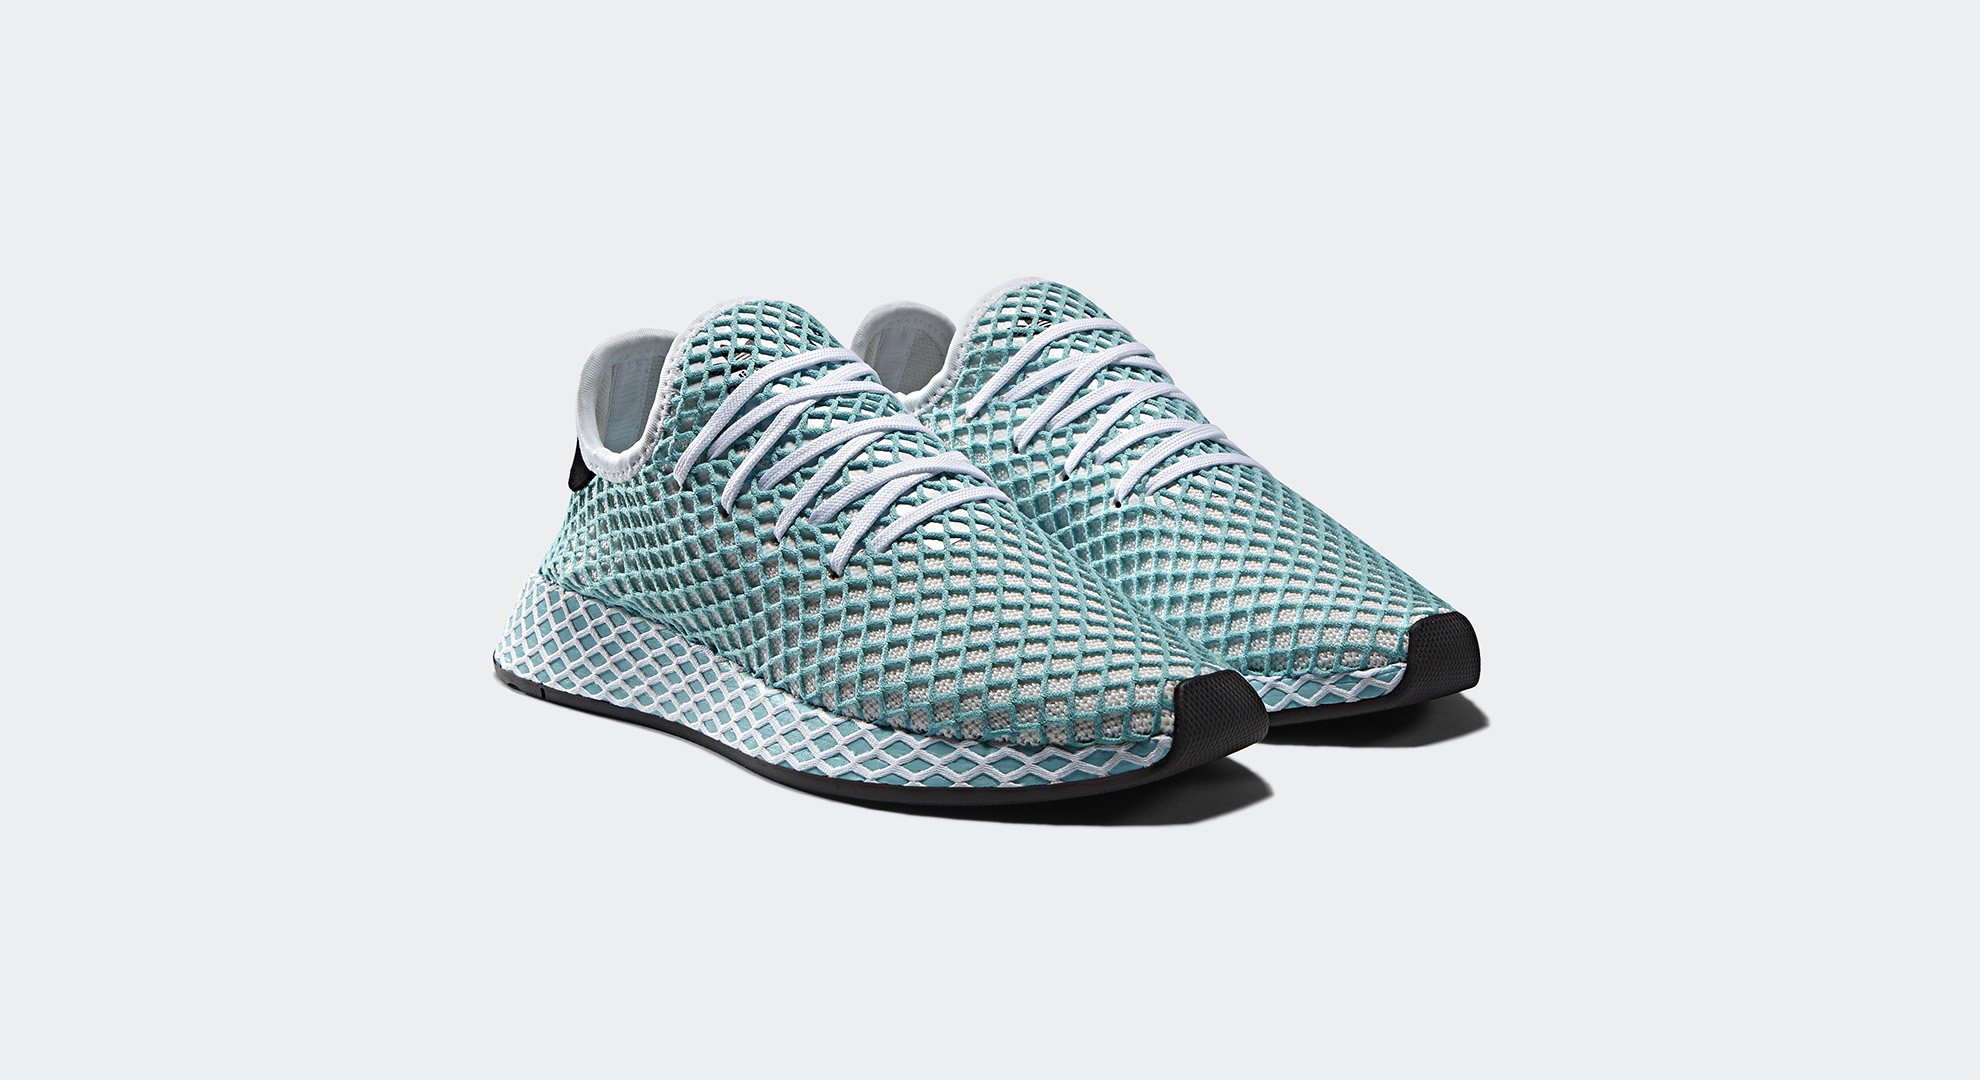 zapatillas Parley for the oceans. Adidas